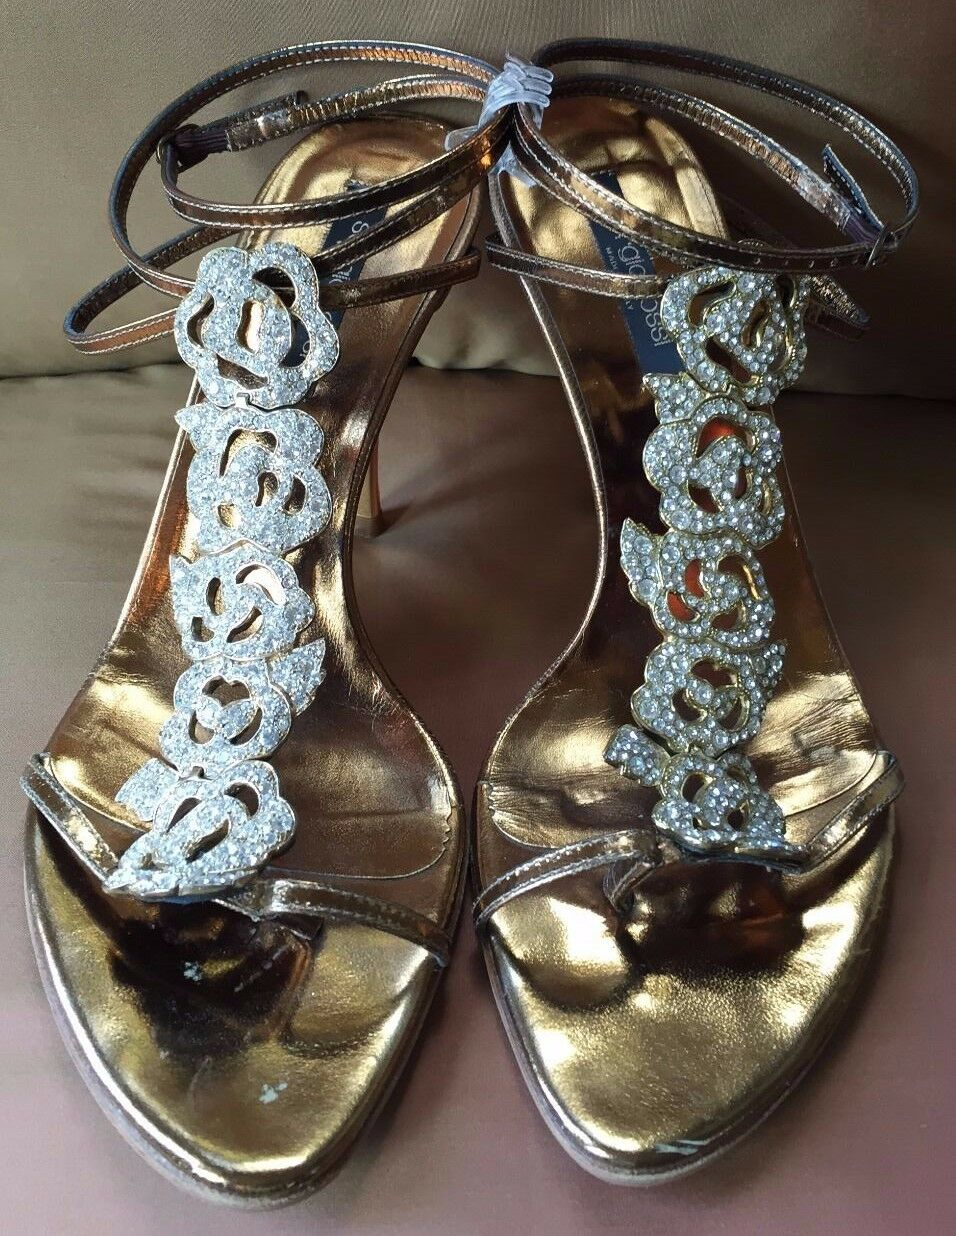 SERGIO ROSSI Bronze Bronze ROSSI Metallic and Jeweled Strappy High Heeled Sandals~37.5~Italy ddb9e0